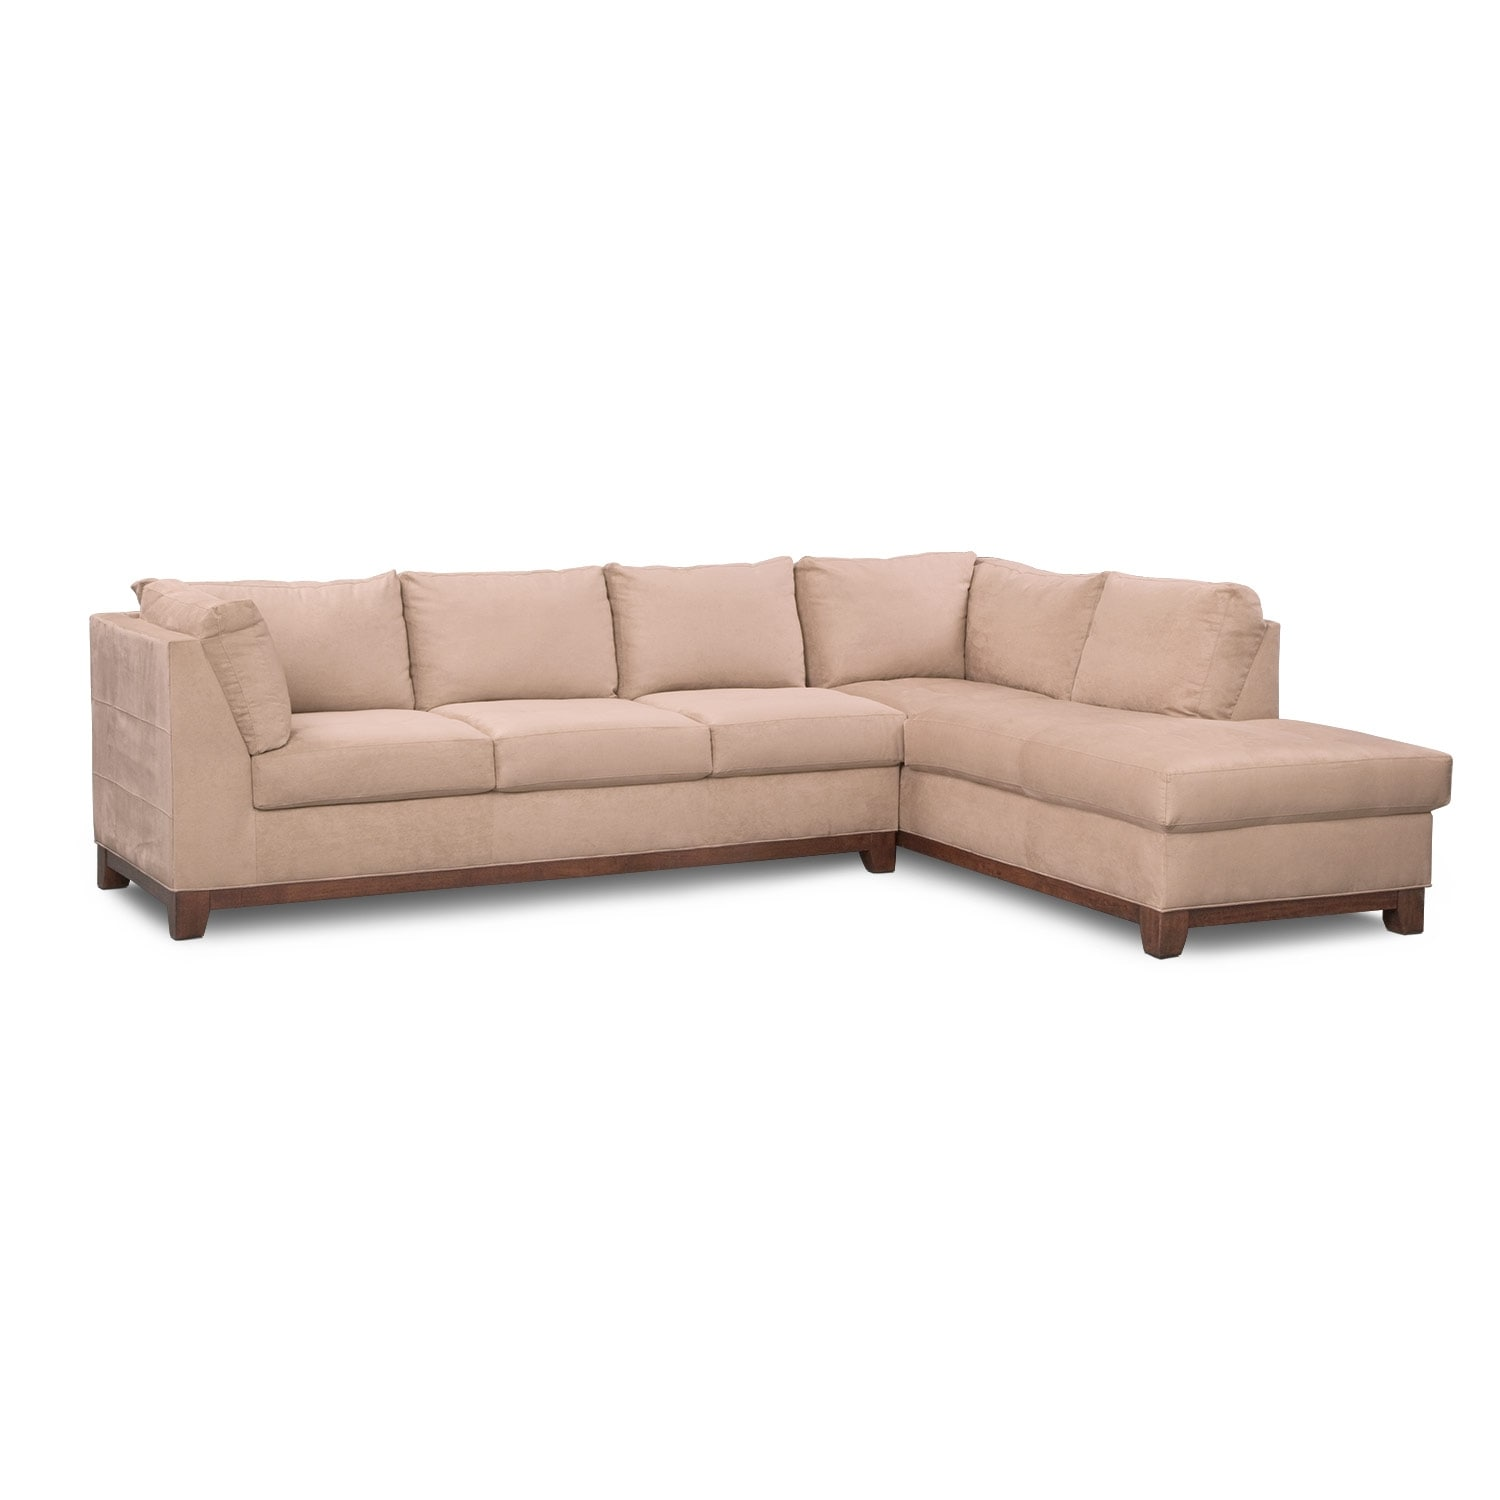 Soho 2 piece sectional with right facing chaise for Couch with 2 chaises